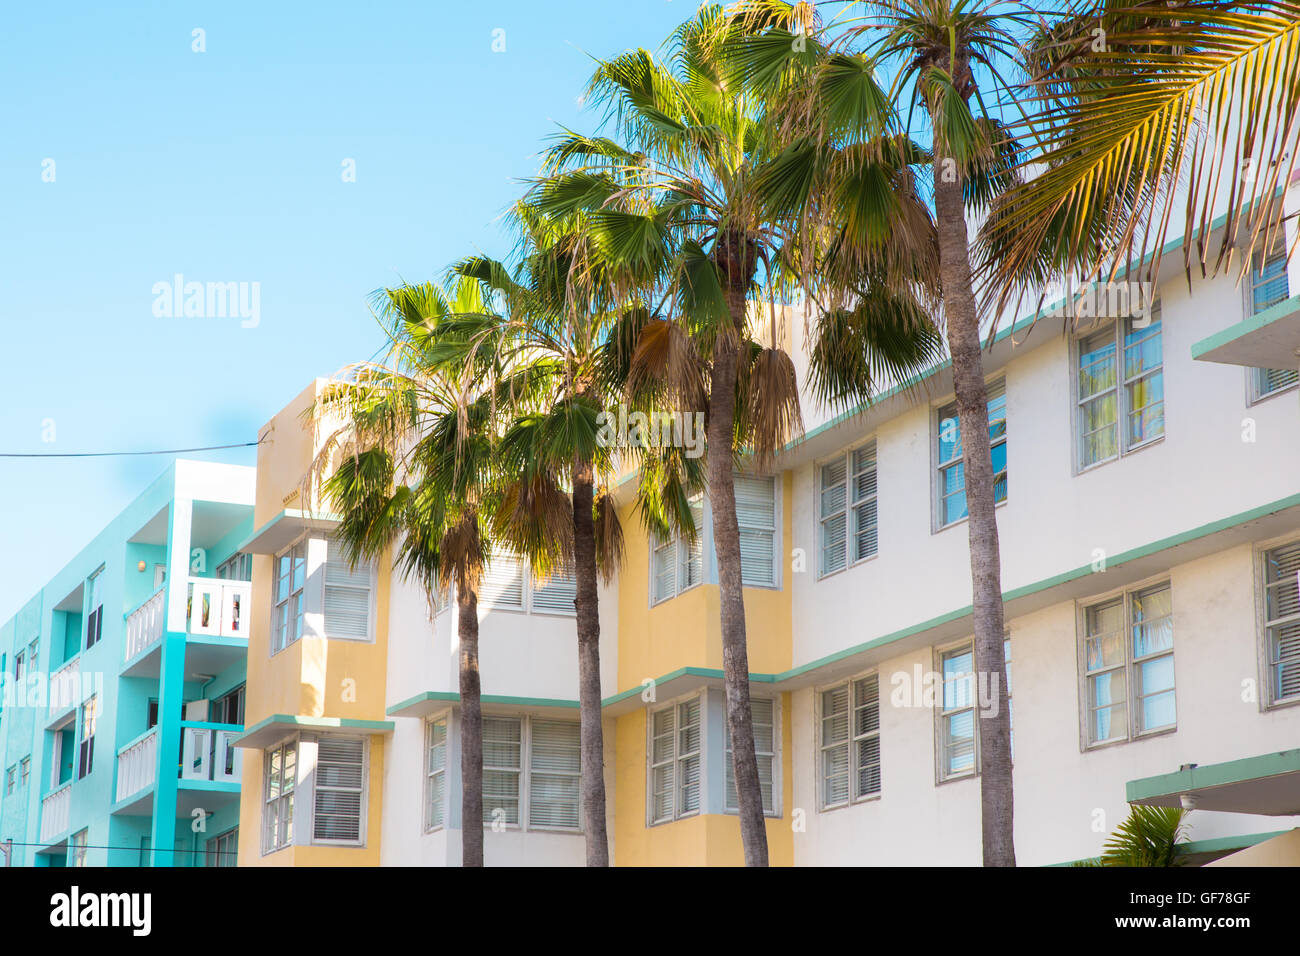 view of typical art deco style apartment building exteriors from South Beach Miami Florida - Stock Image